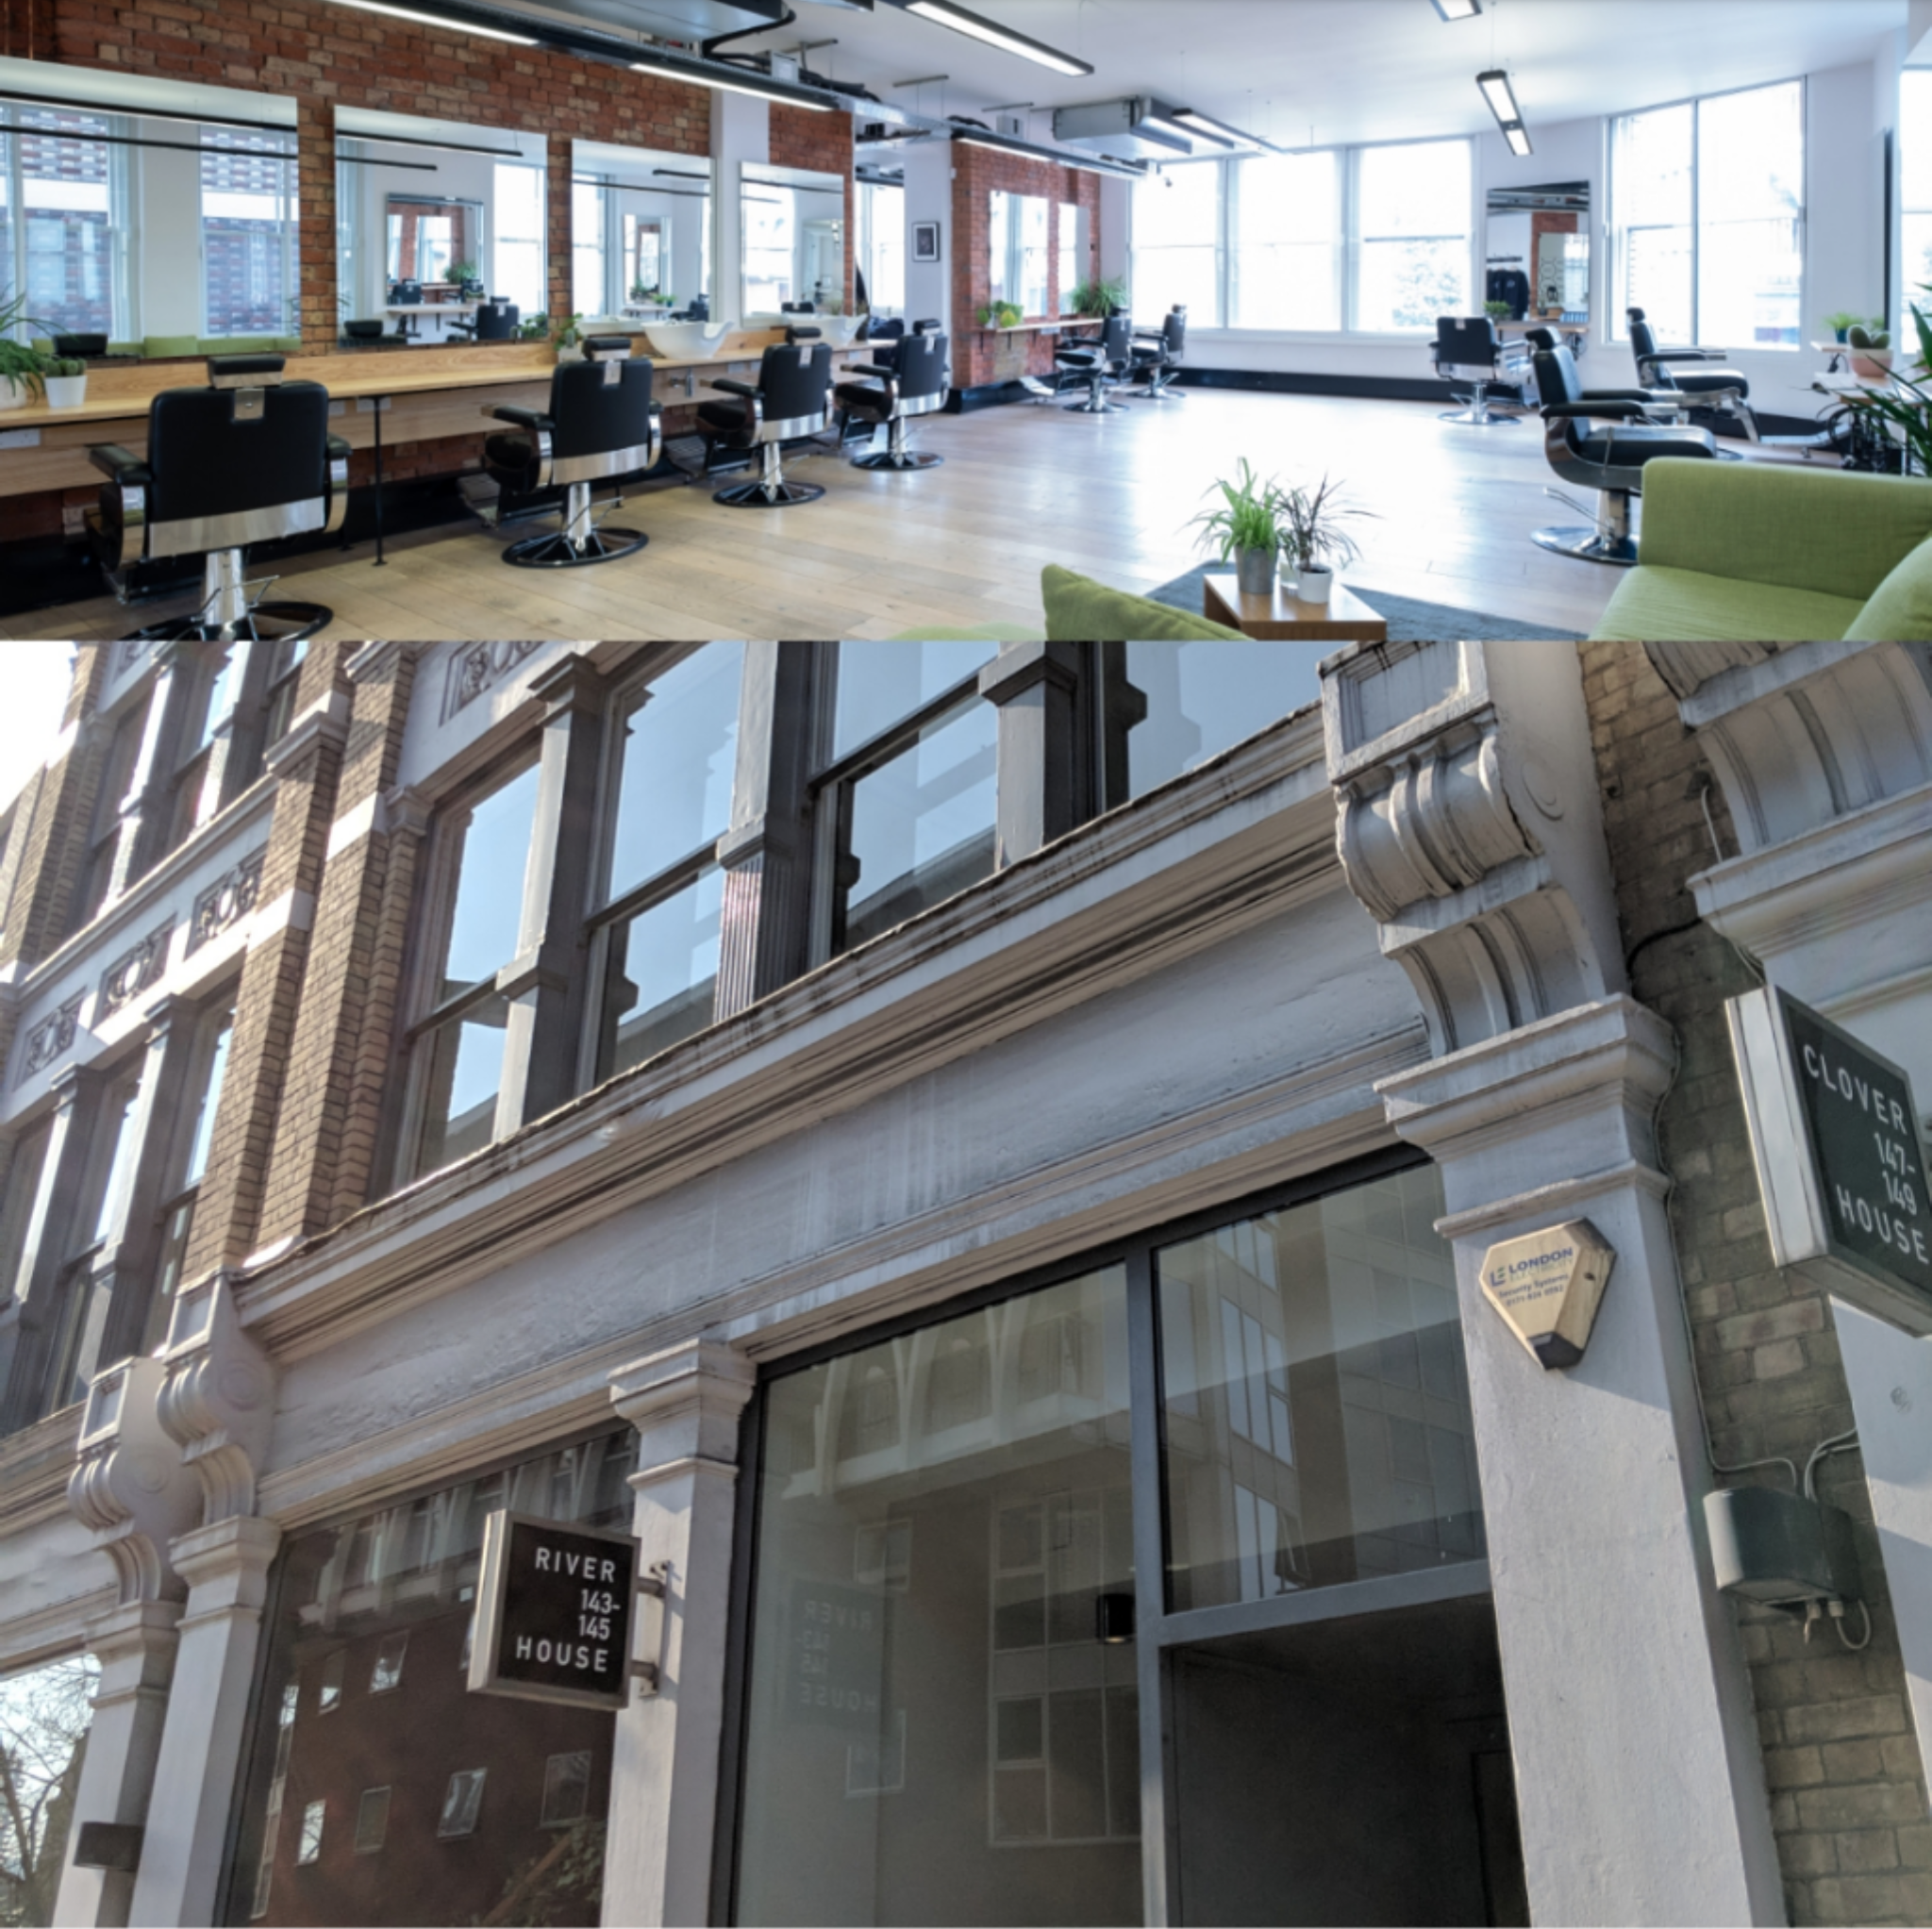 The Hunter Collective is located on the Second Floor of River House on the Farringdon Road facing the NCP Car Park. It's a 2000sqft of co working space for all members and clients. Complimentary WIFI and drinks come as standard when having any service provided by the members.